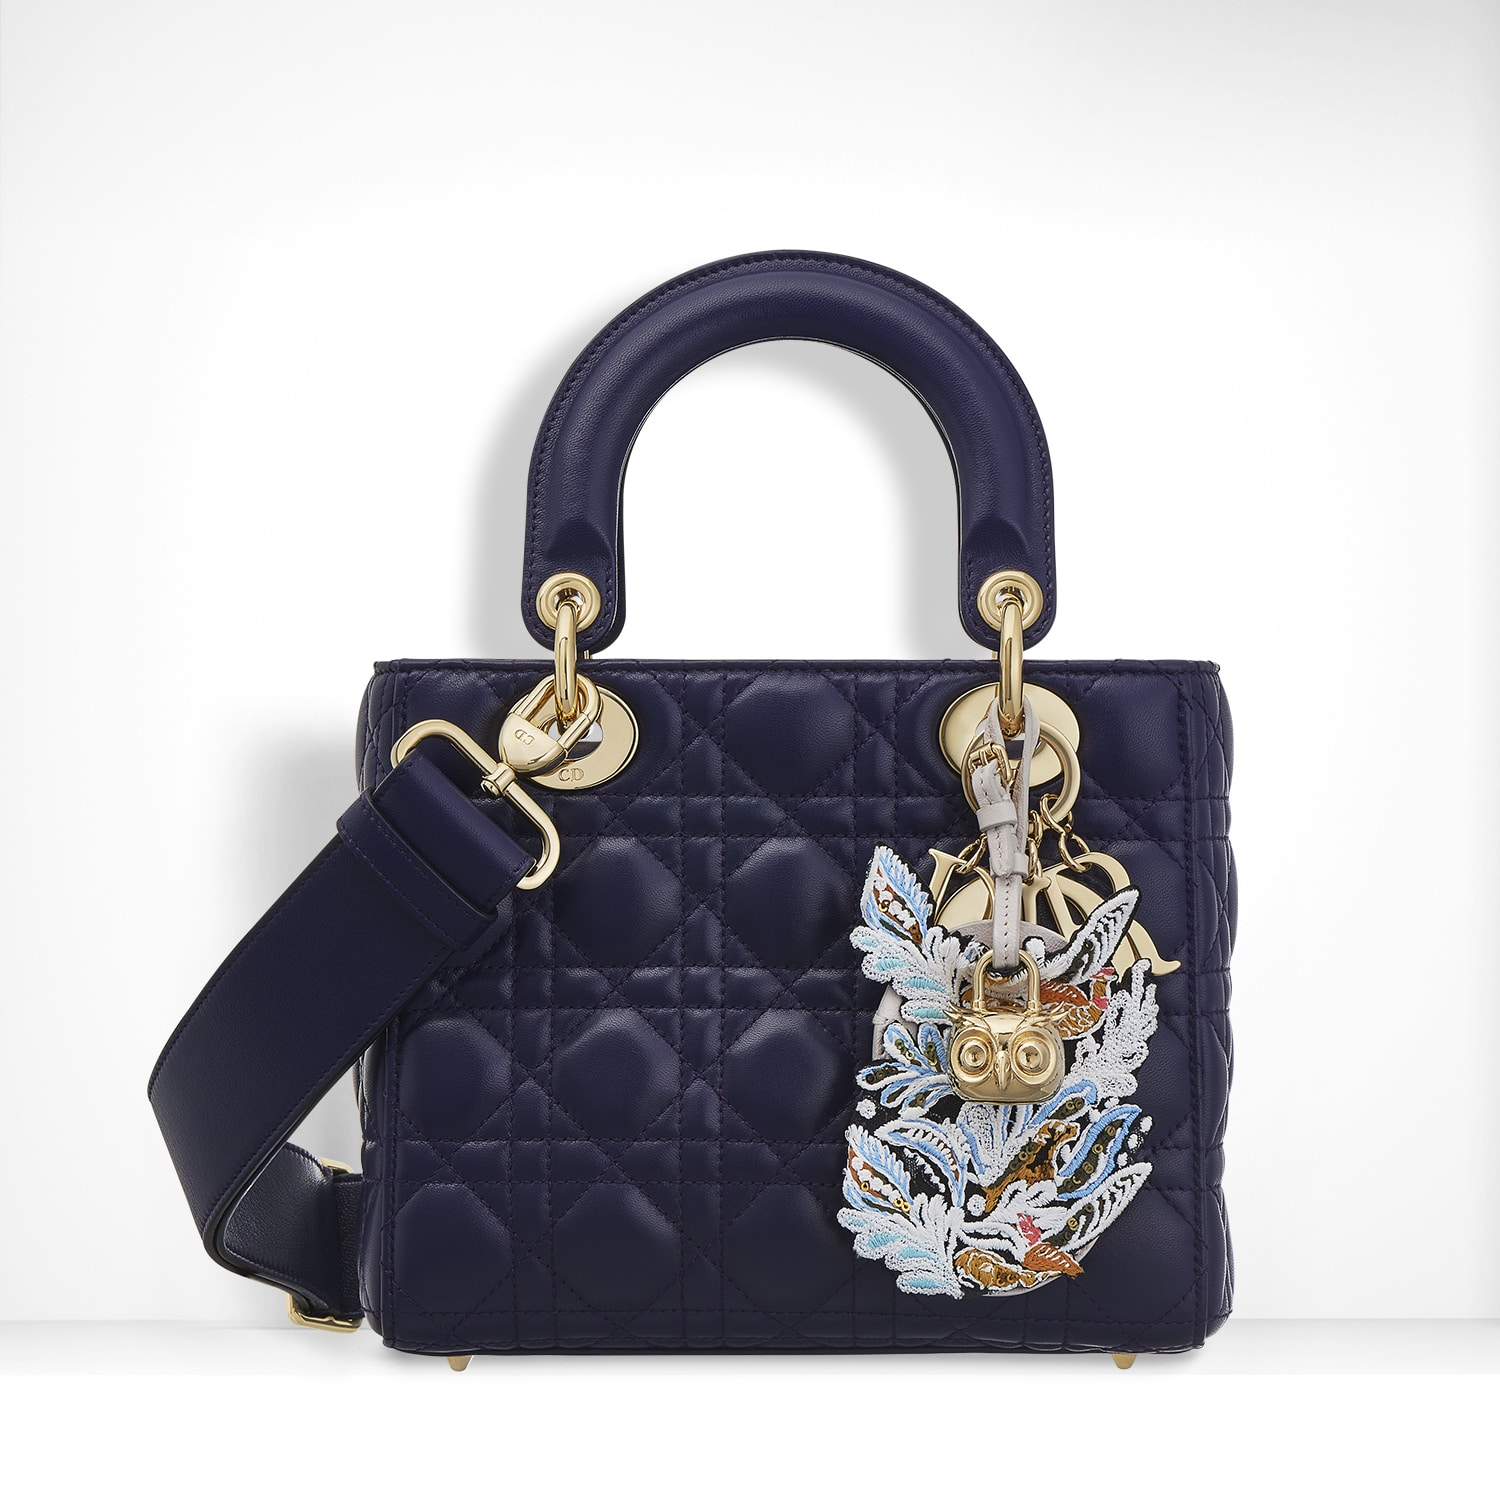 Dior Midnight Blue Lambskin With Embroidered Address Tag Lady Bag